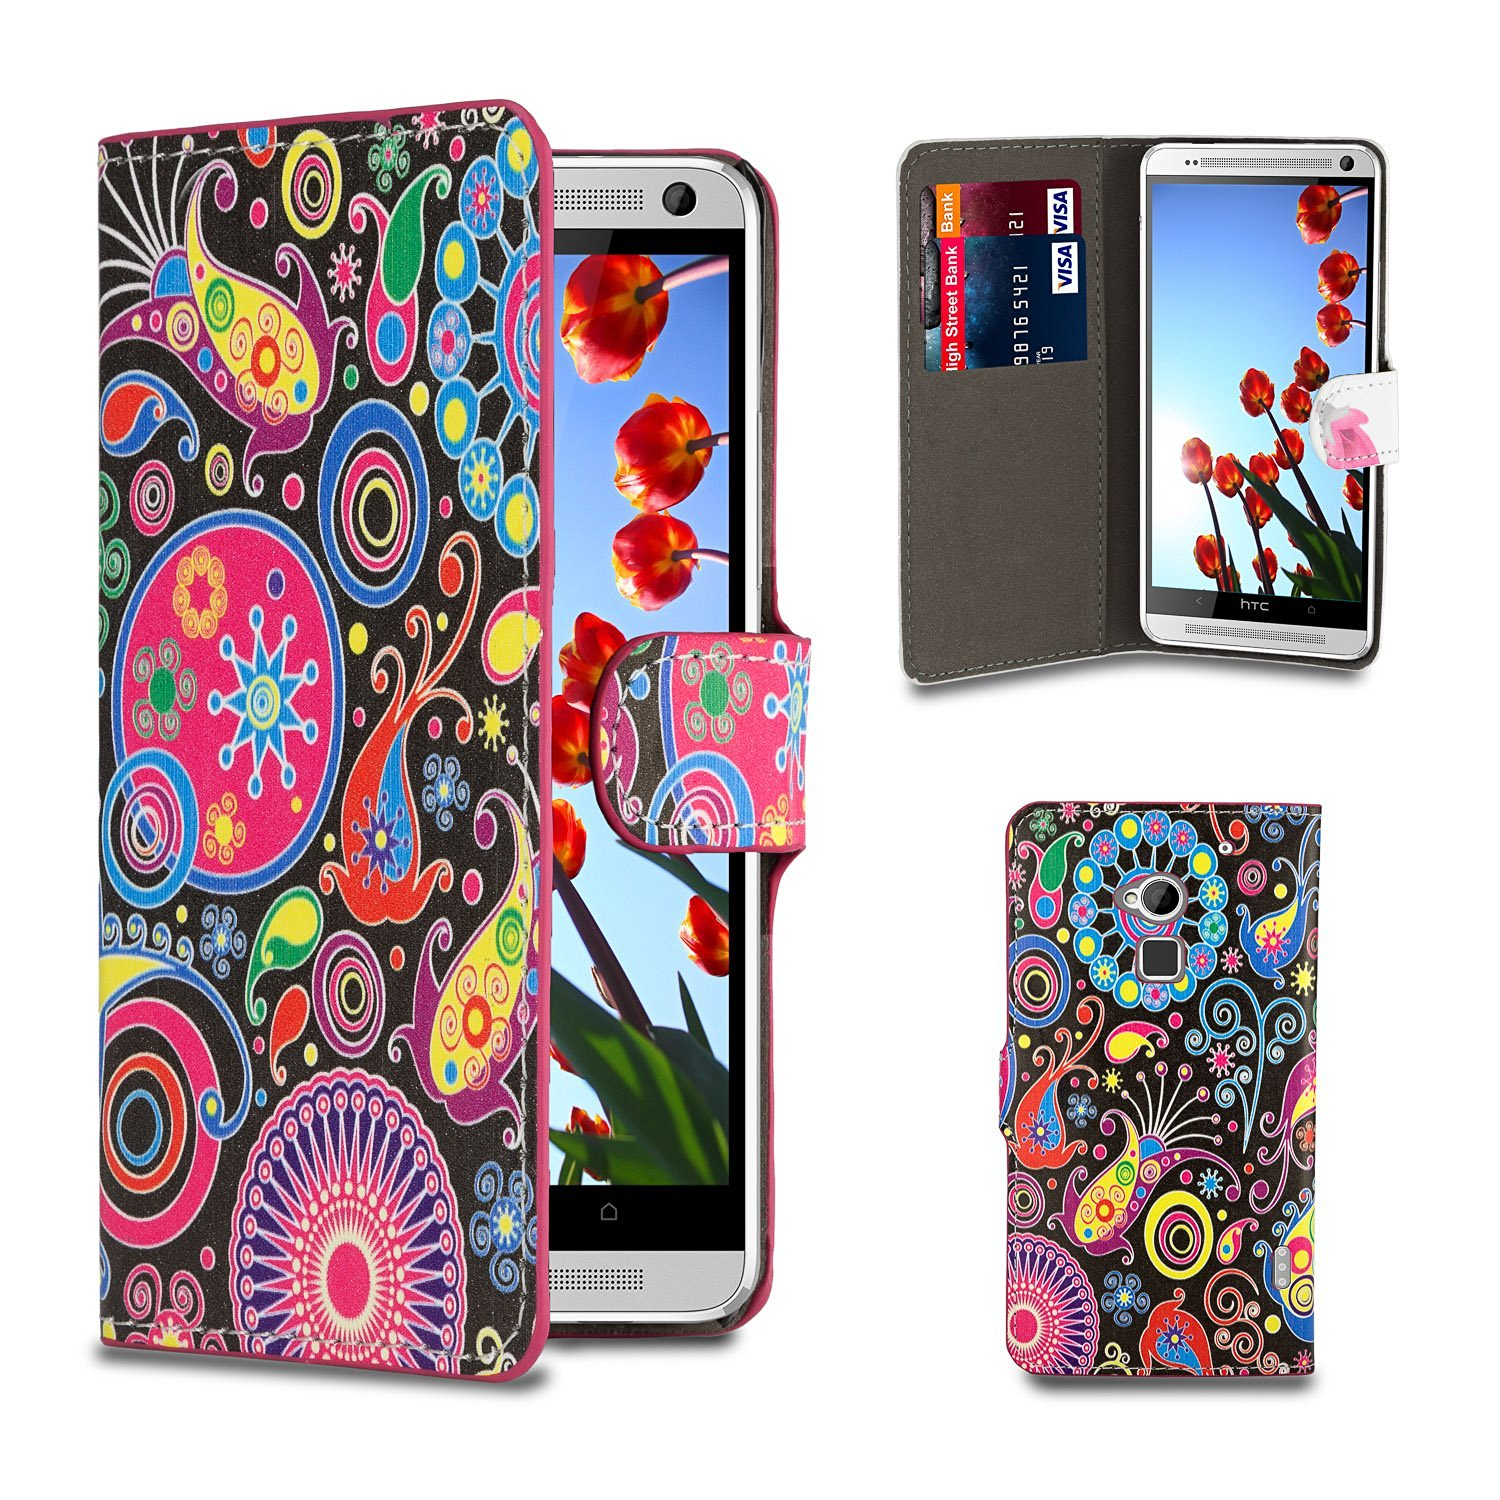 32nd® Design book wallet PU leather case cover for HTC One Max (T6) + screen protector and cleaning cloth - Jellyfish